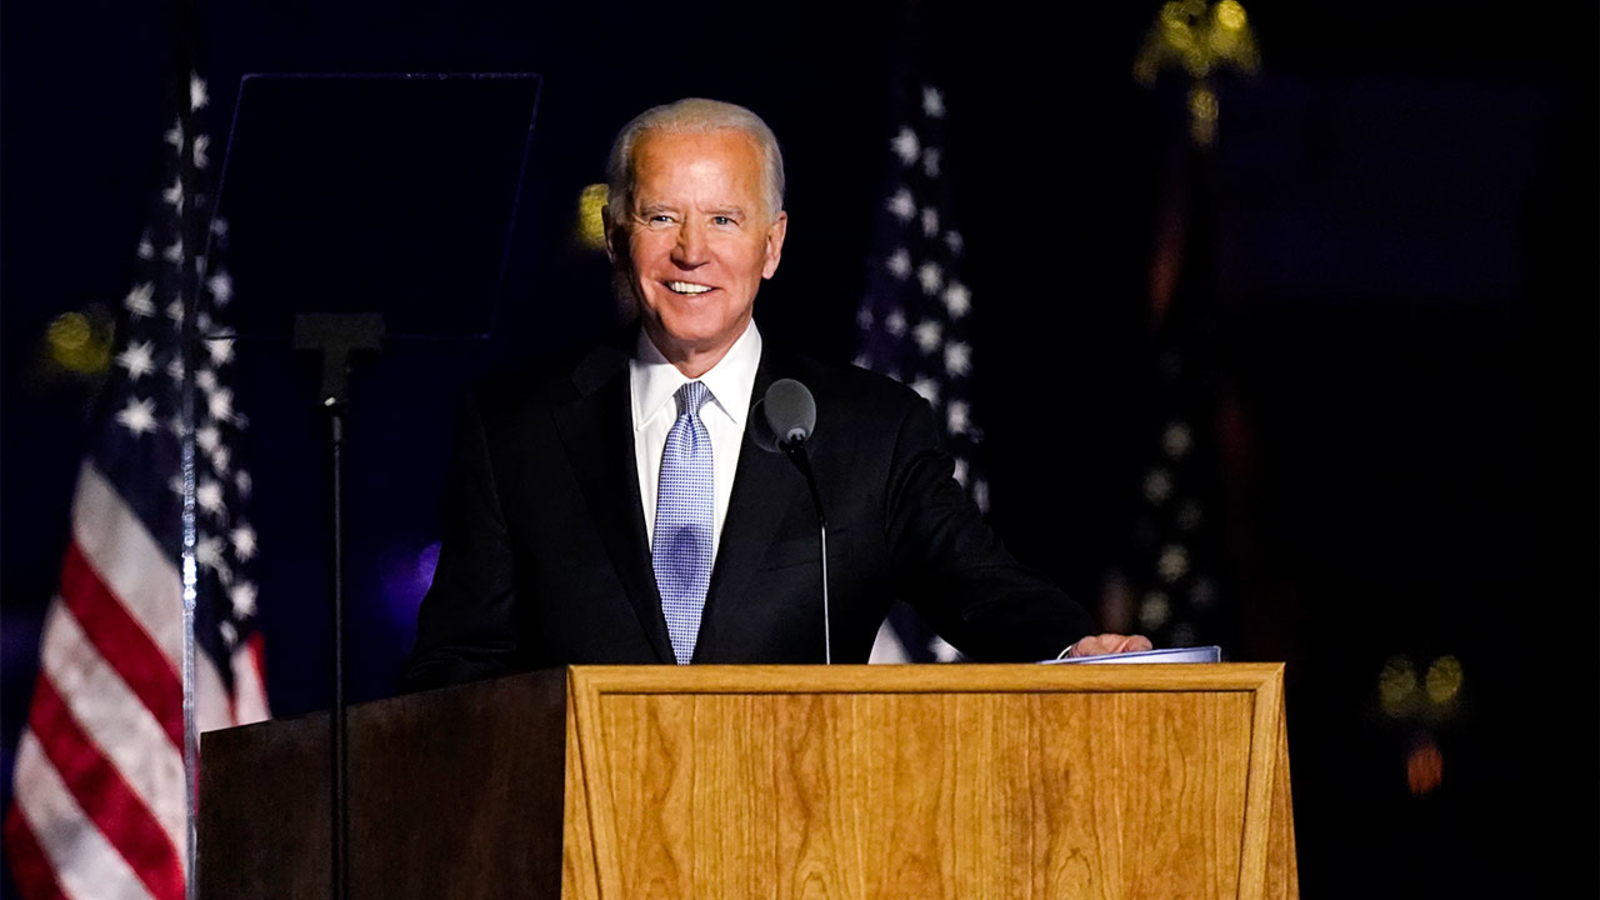 Biden signs executive orders to expand food assistance, Up federal pay